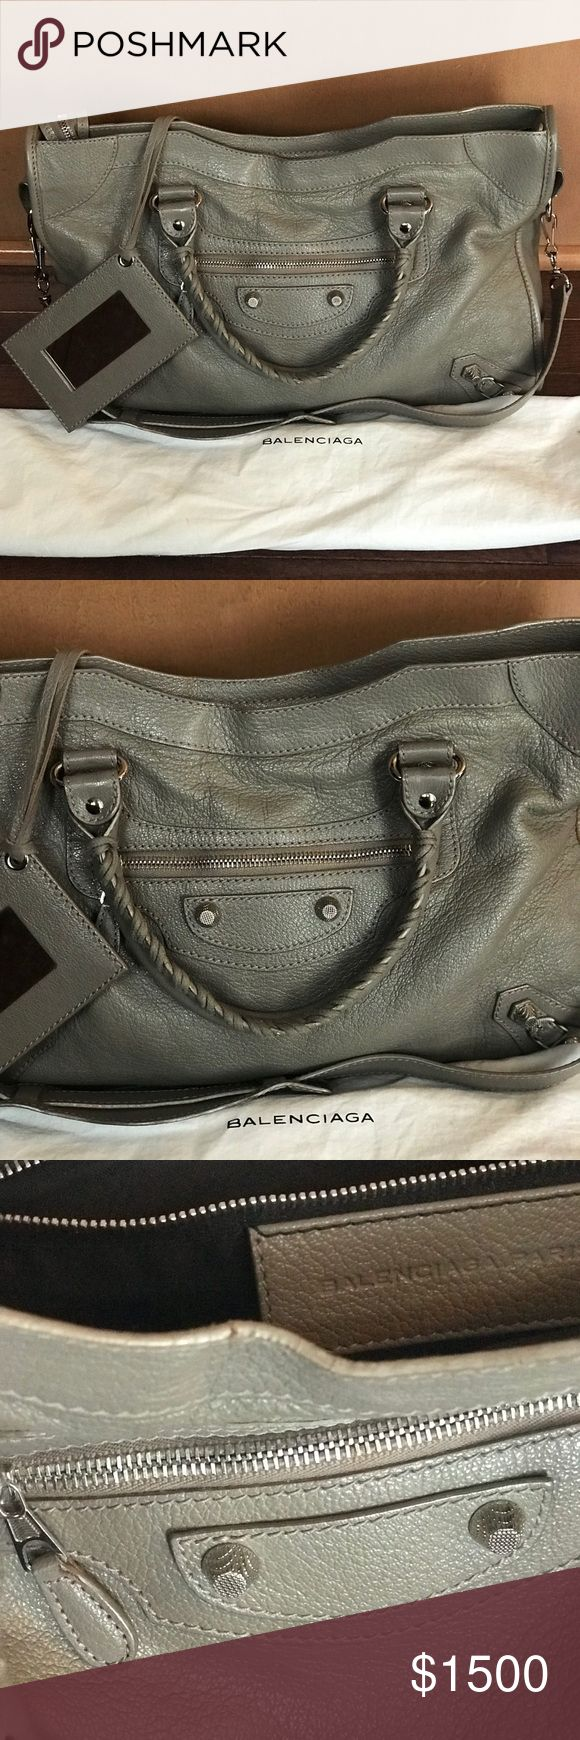 "Authentic Balenciaga Classic Nickel City Bag Well preserved Authentic Balenciaga Nickel City Bag aka ""the Motorcycle bag"" in a beautiful Graphite color. Made of Crackled lambskin  with Giant studs, zip closure, and of-course the framed mirror.  Dimensions: 10.2""H x 15""W x 5.9""D Balenciaga Bags Shoulder Bags"